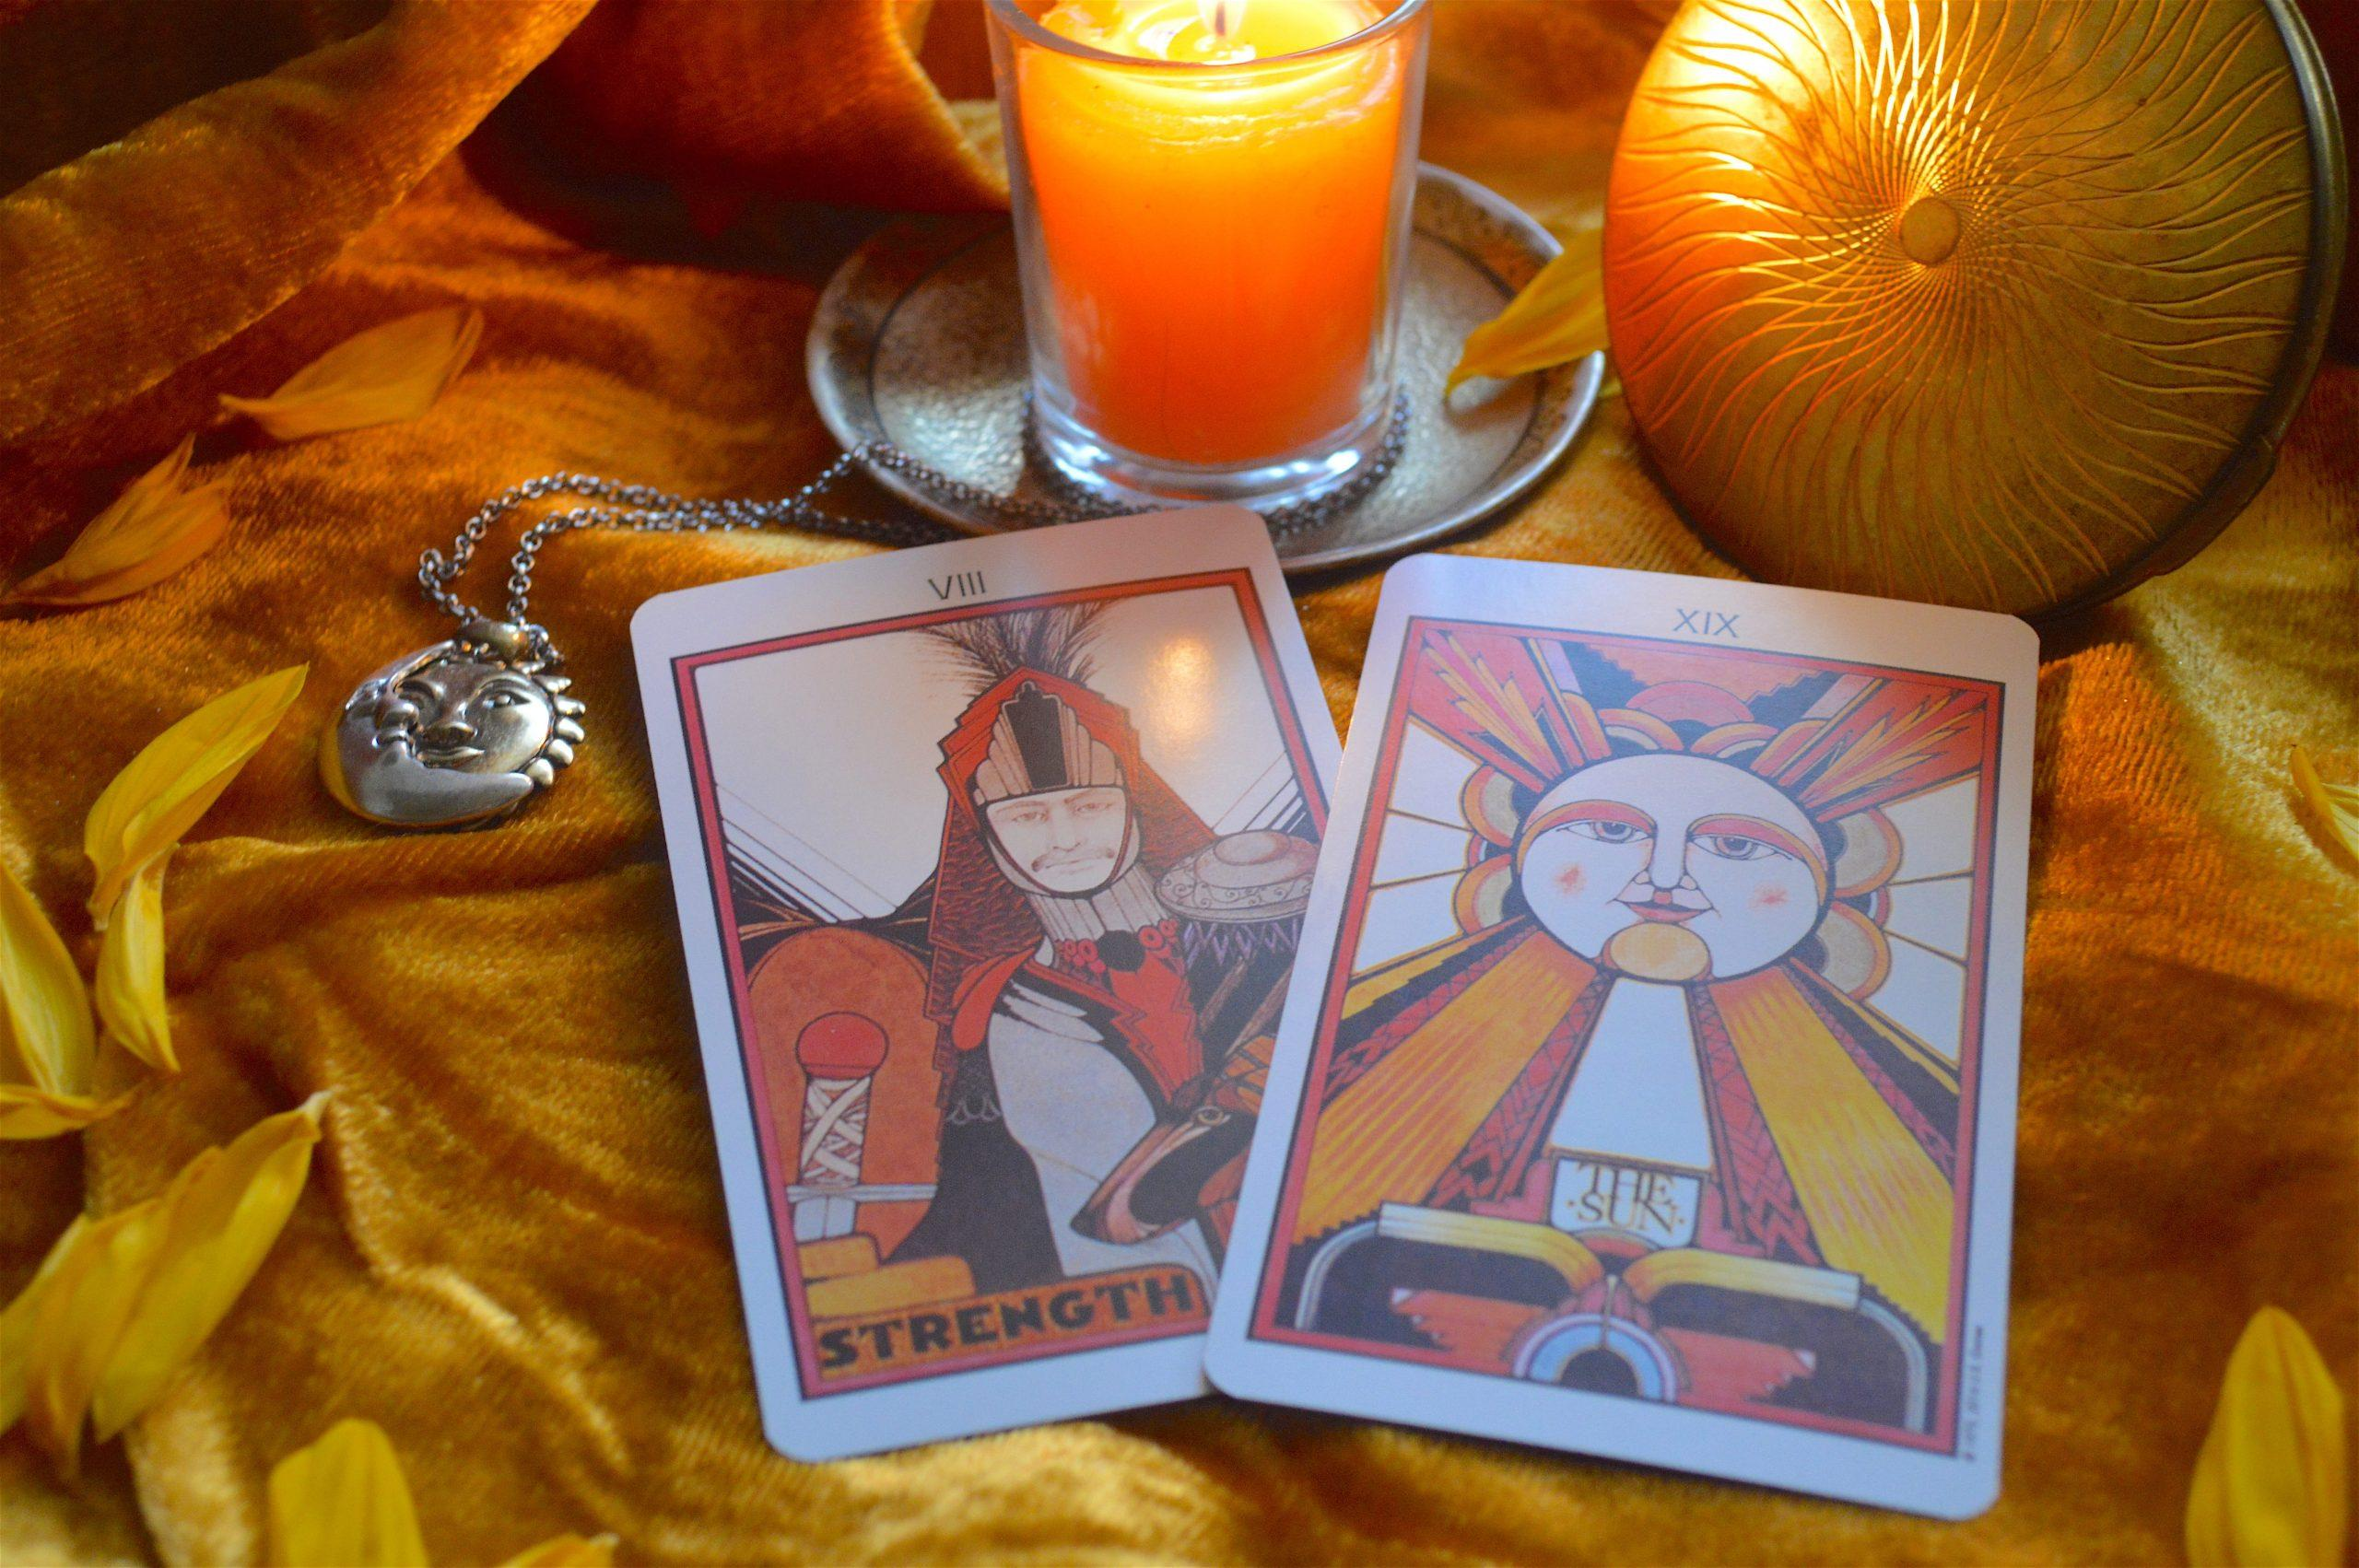 LEO POWER CARDS: Strength and The Sun. Express your passions with inner strength, resilience, and loving energy. Radiant warmth and vitality is the key to success. From the Aquarian Tarot deck by David Palladini.